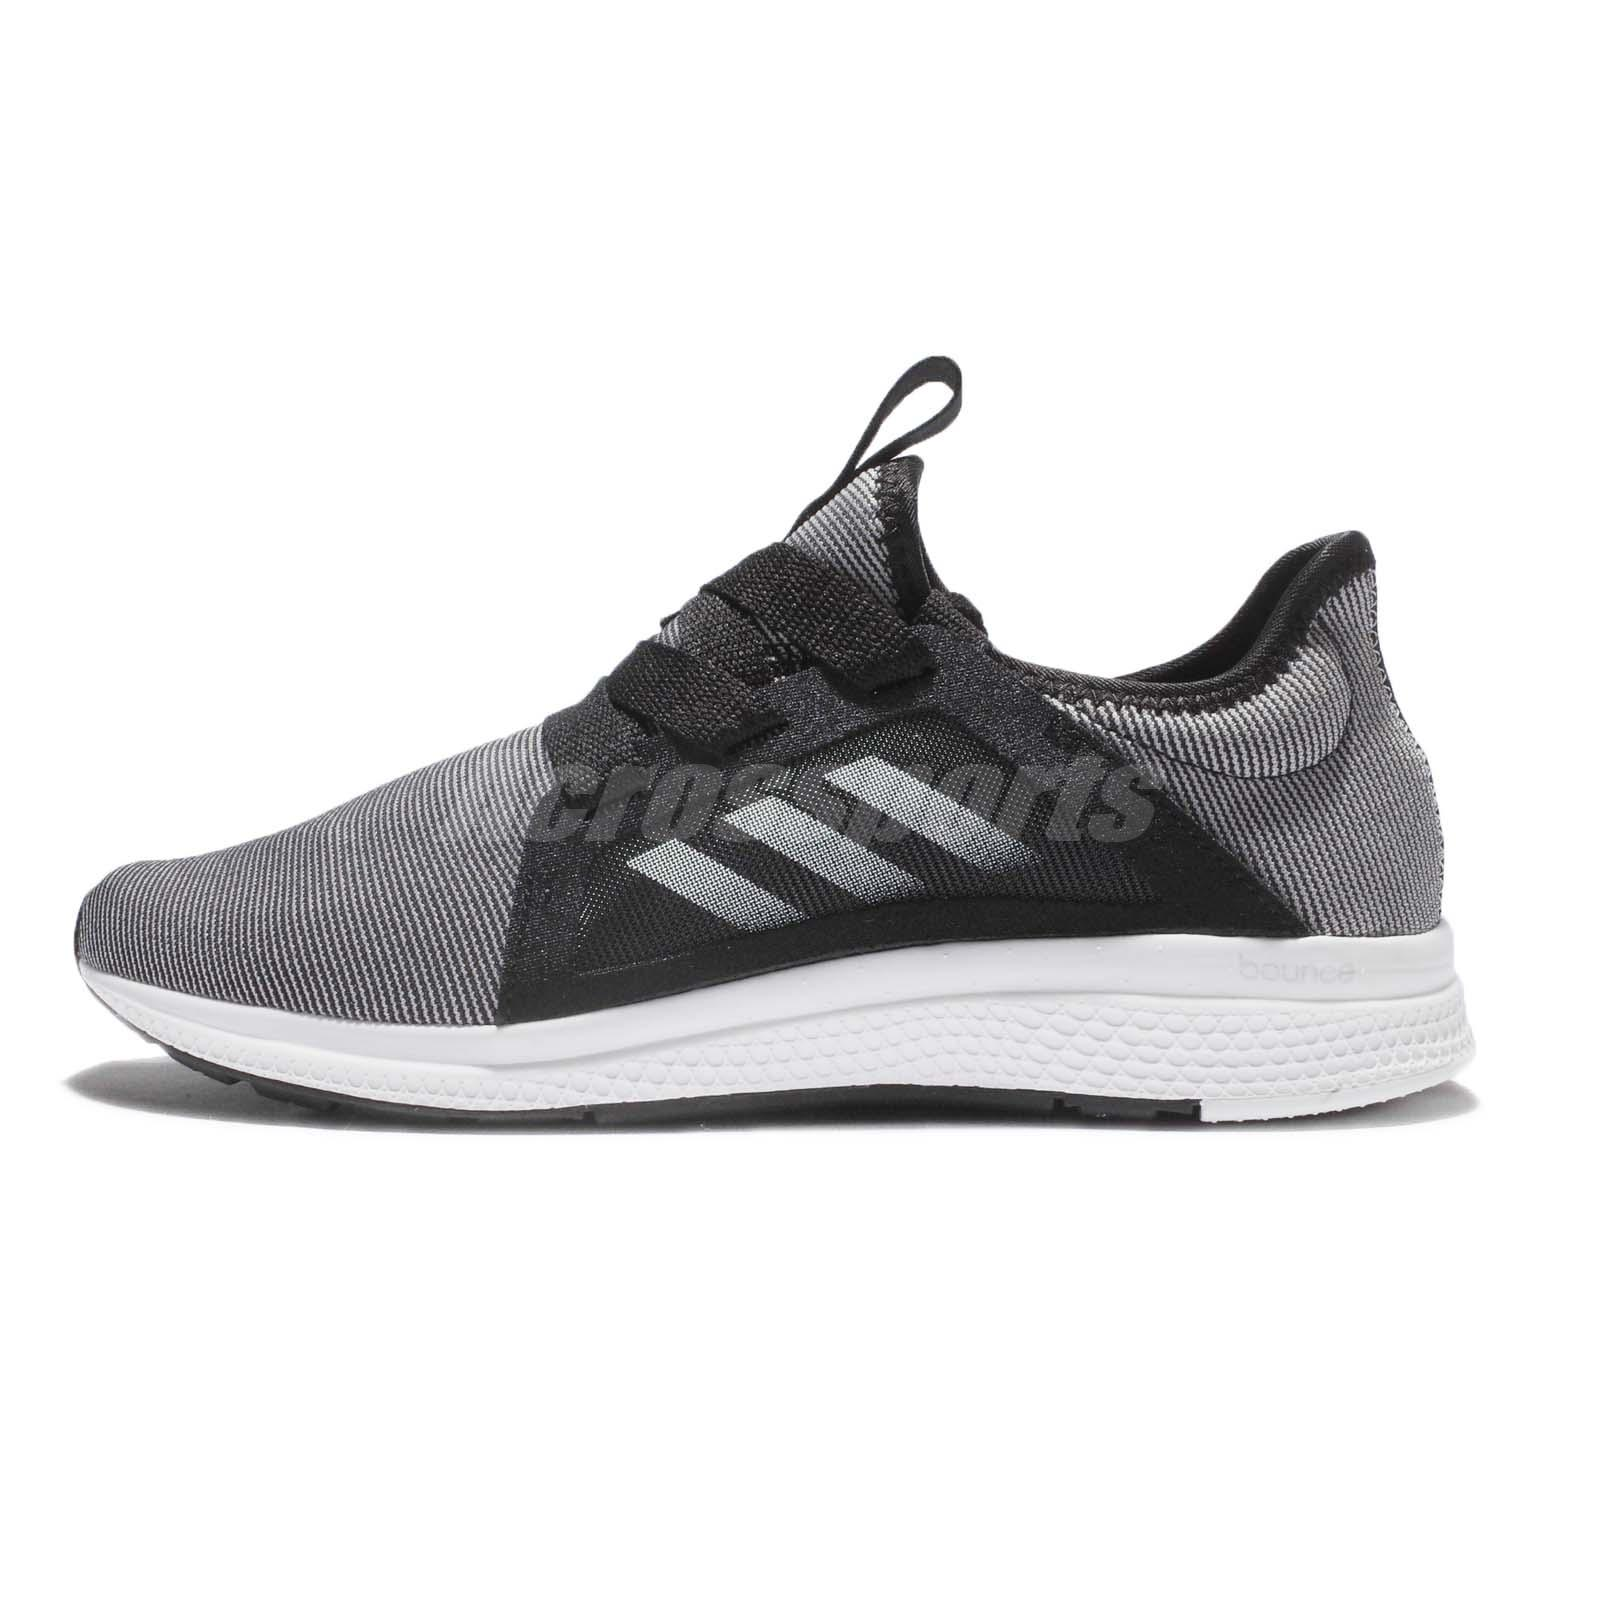 adidas Edge Lux W BOUNCE Black Grey White Women Running Shoes Sneakers  BB8211 a878a7e2a